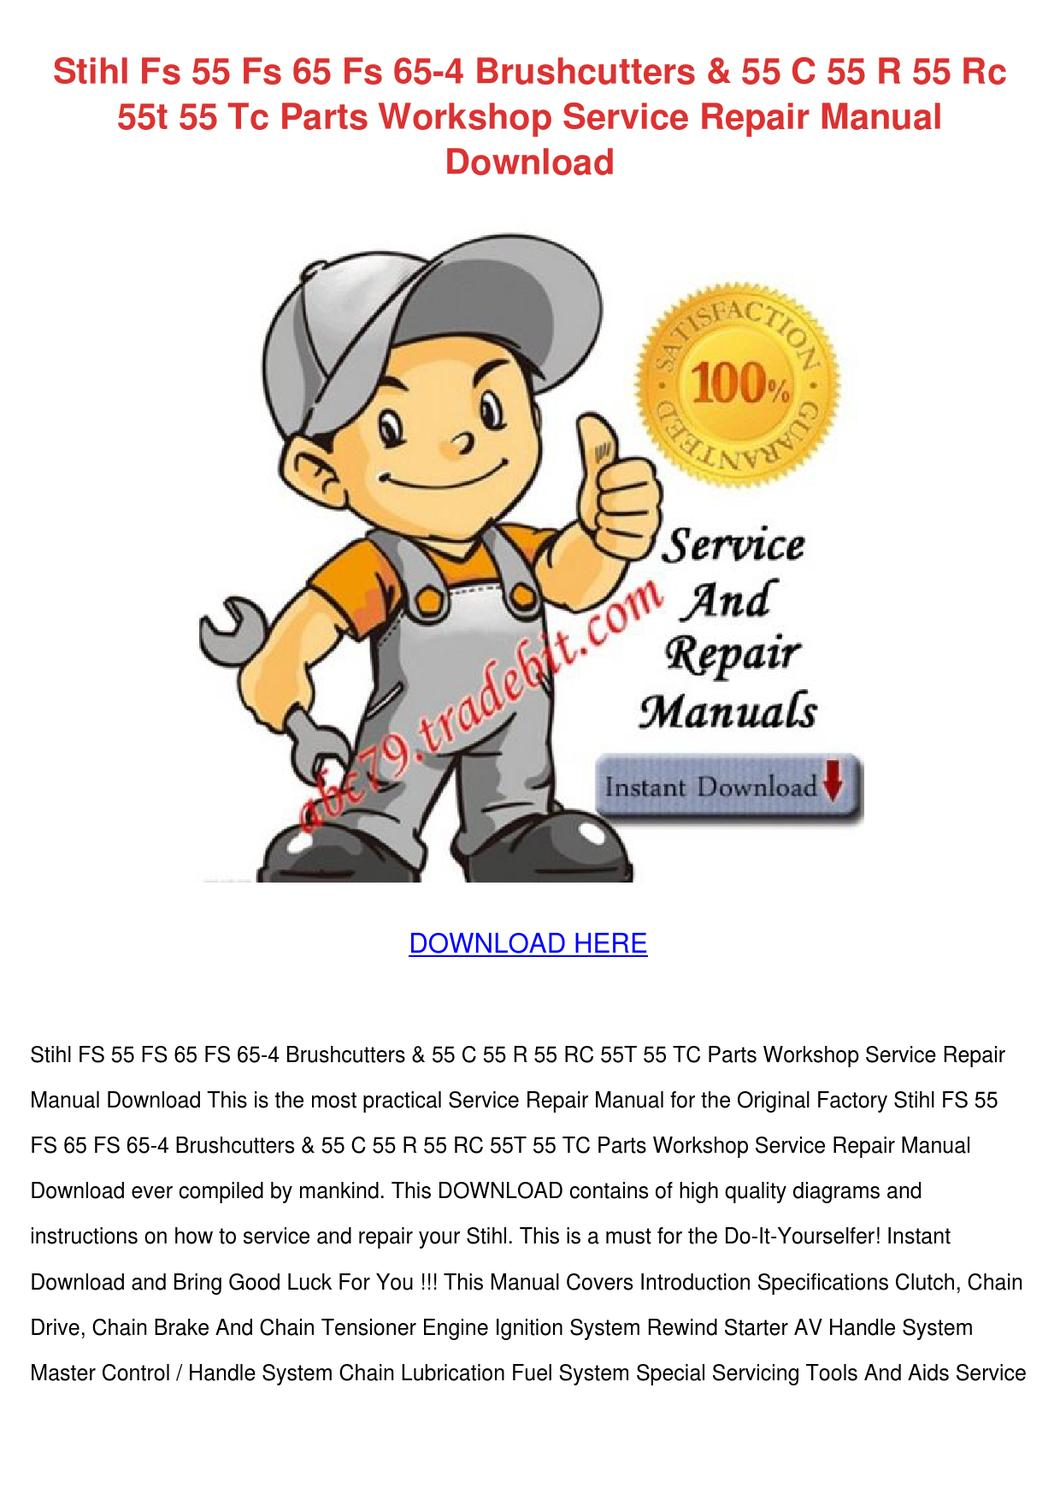 Stihl fs 76 repair manual